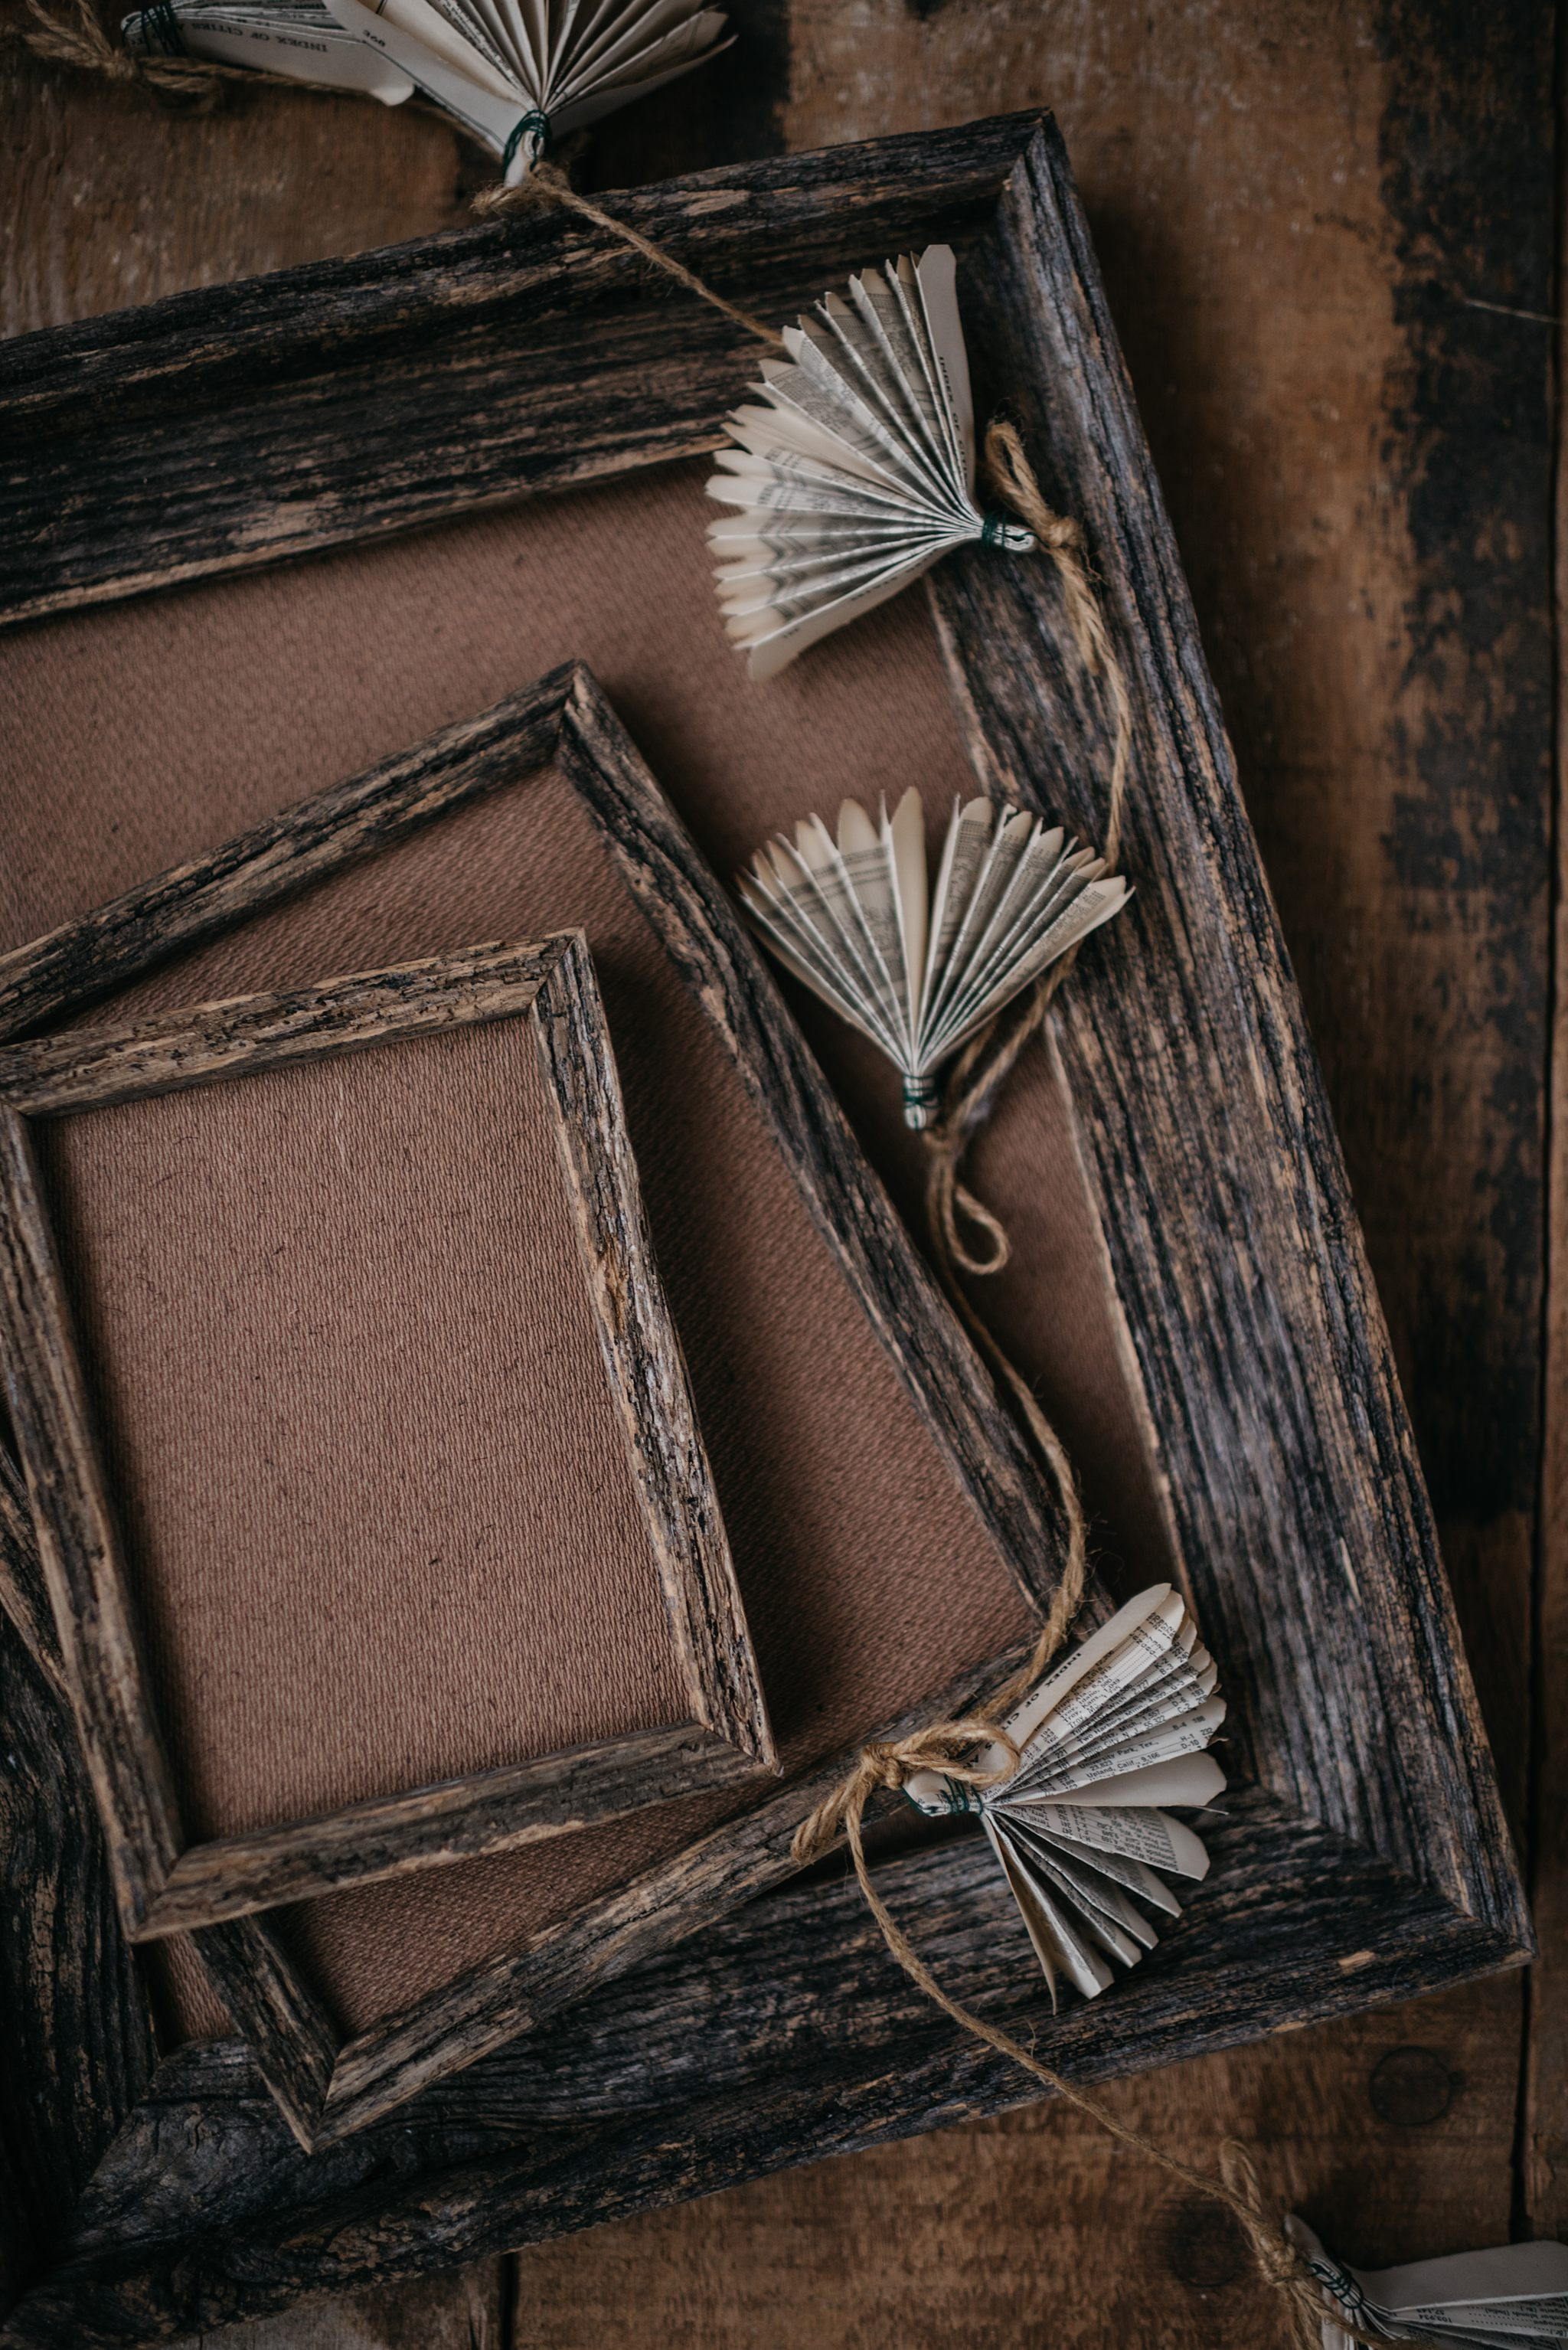 Our barnwood frames are handcrafted from locally sourced reclaimed wood and are a perfect compliment to any of our print product options.No glass.Additional sizes and options available upon request.    Barnwood Frame Pricing:    5x7 - $80   8x10 - $120  8x12 - $120   11x14 - $180   16x20 - $240  16x24 - $270   20x30 - $450   30x40 - $680